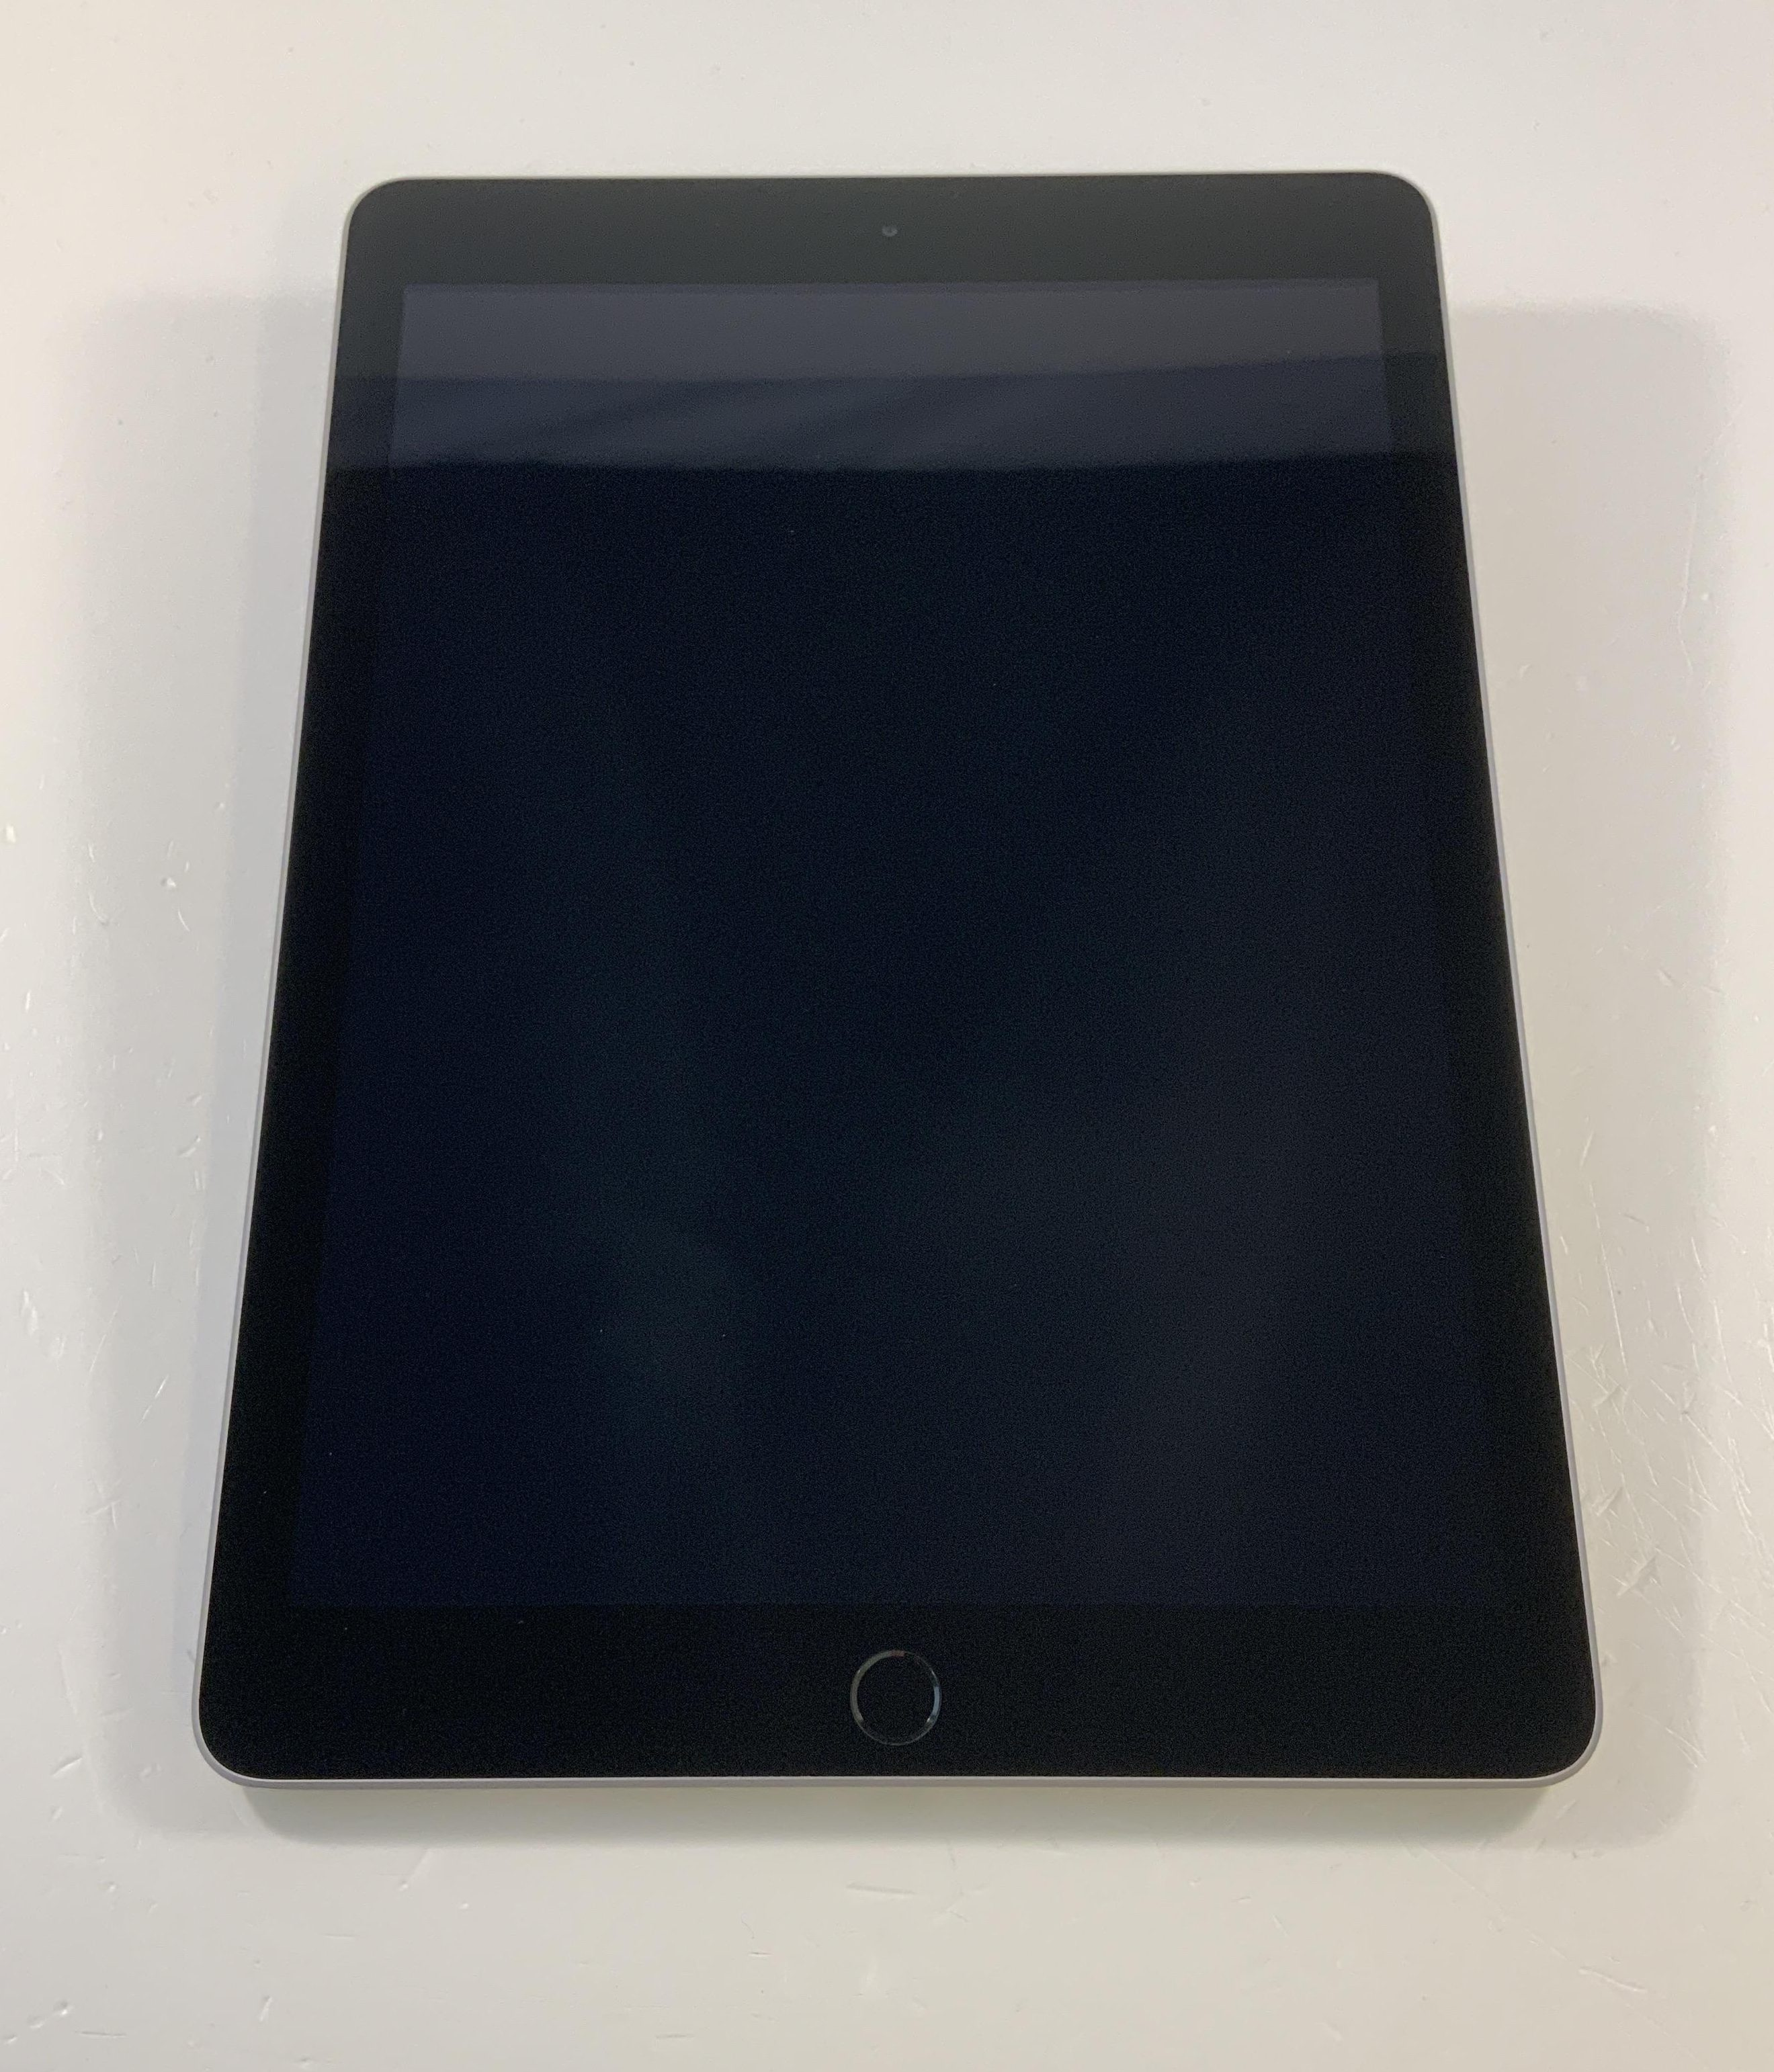 iPad 5 Wi-Fi 32GB, 32GB, Space Gray, immagine 1